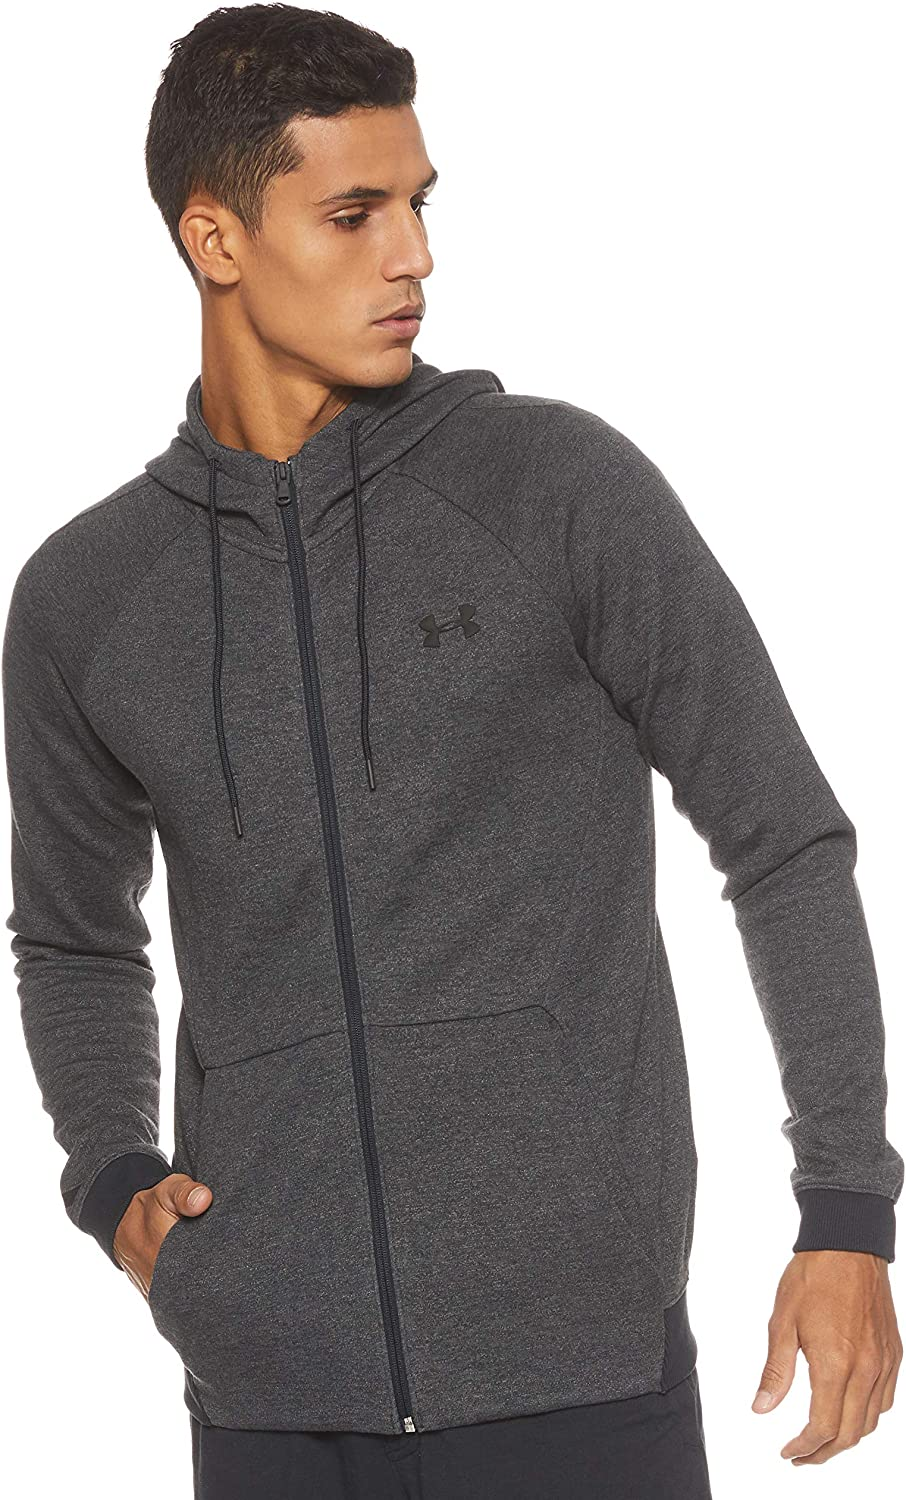 Under Armour Men's Unstoppable 2X Full Zip